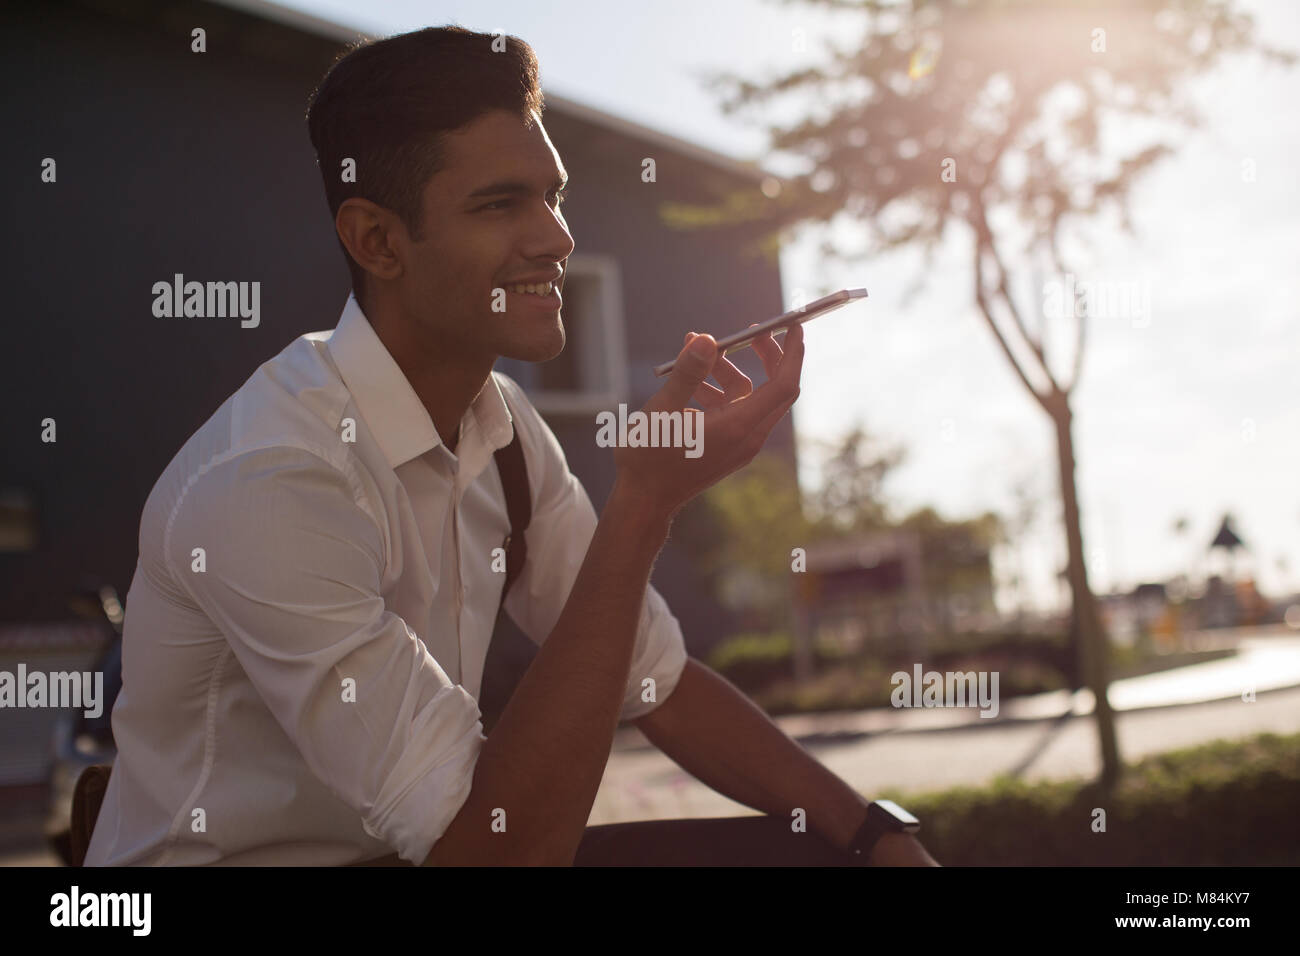 Businessman talking on mobile phone in office premises - Stock Image